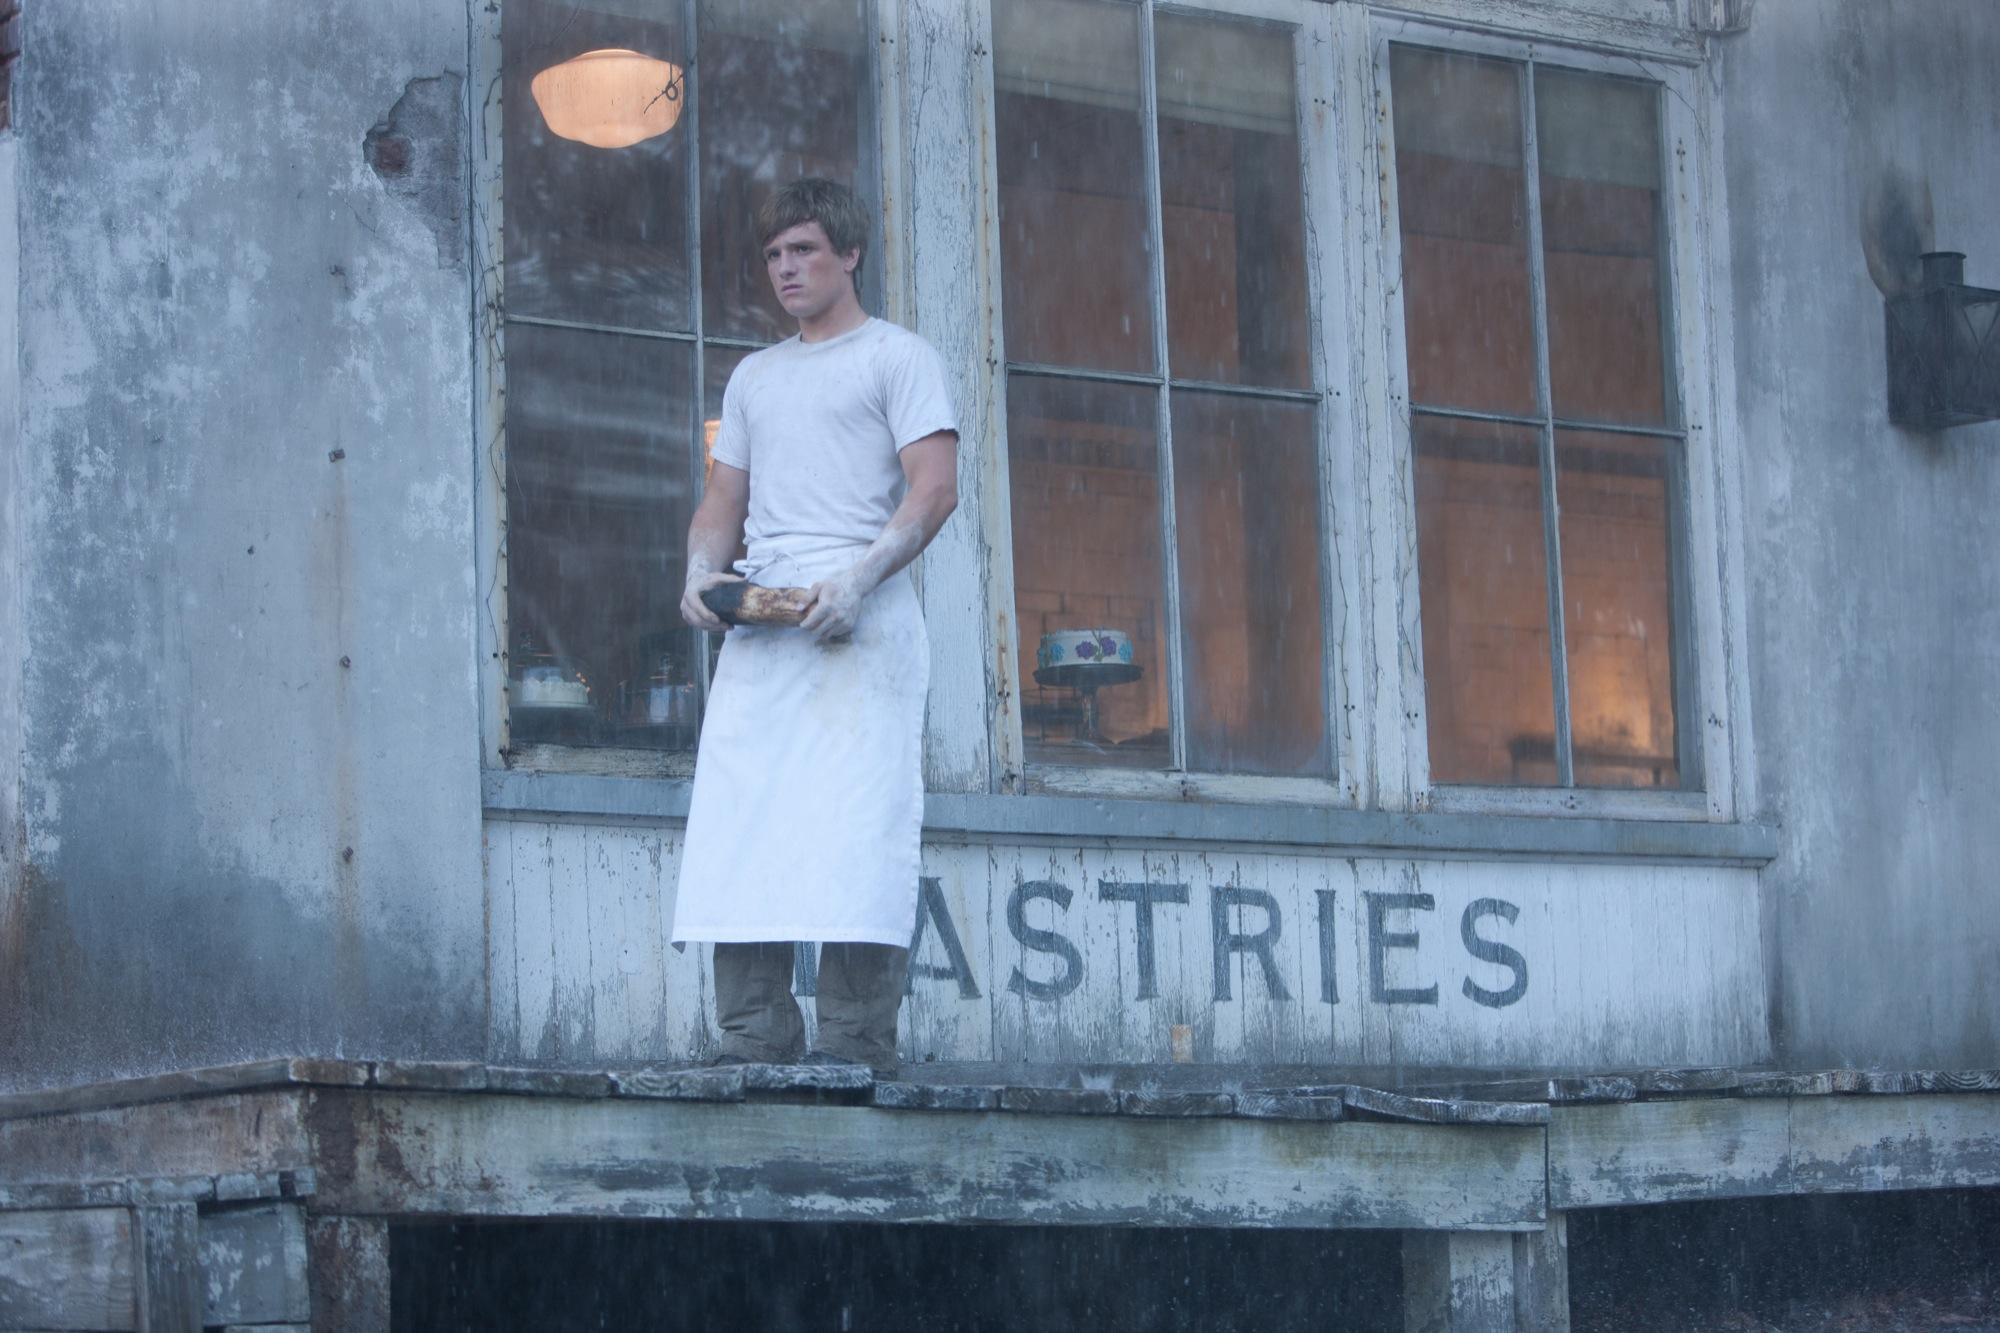 http://images1.wikia.nocookie.net/__cb20110807123744/thehungergames/images/b/bf/Peeta_the_boy_with_the_bread.JPG